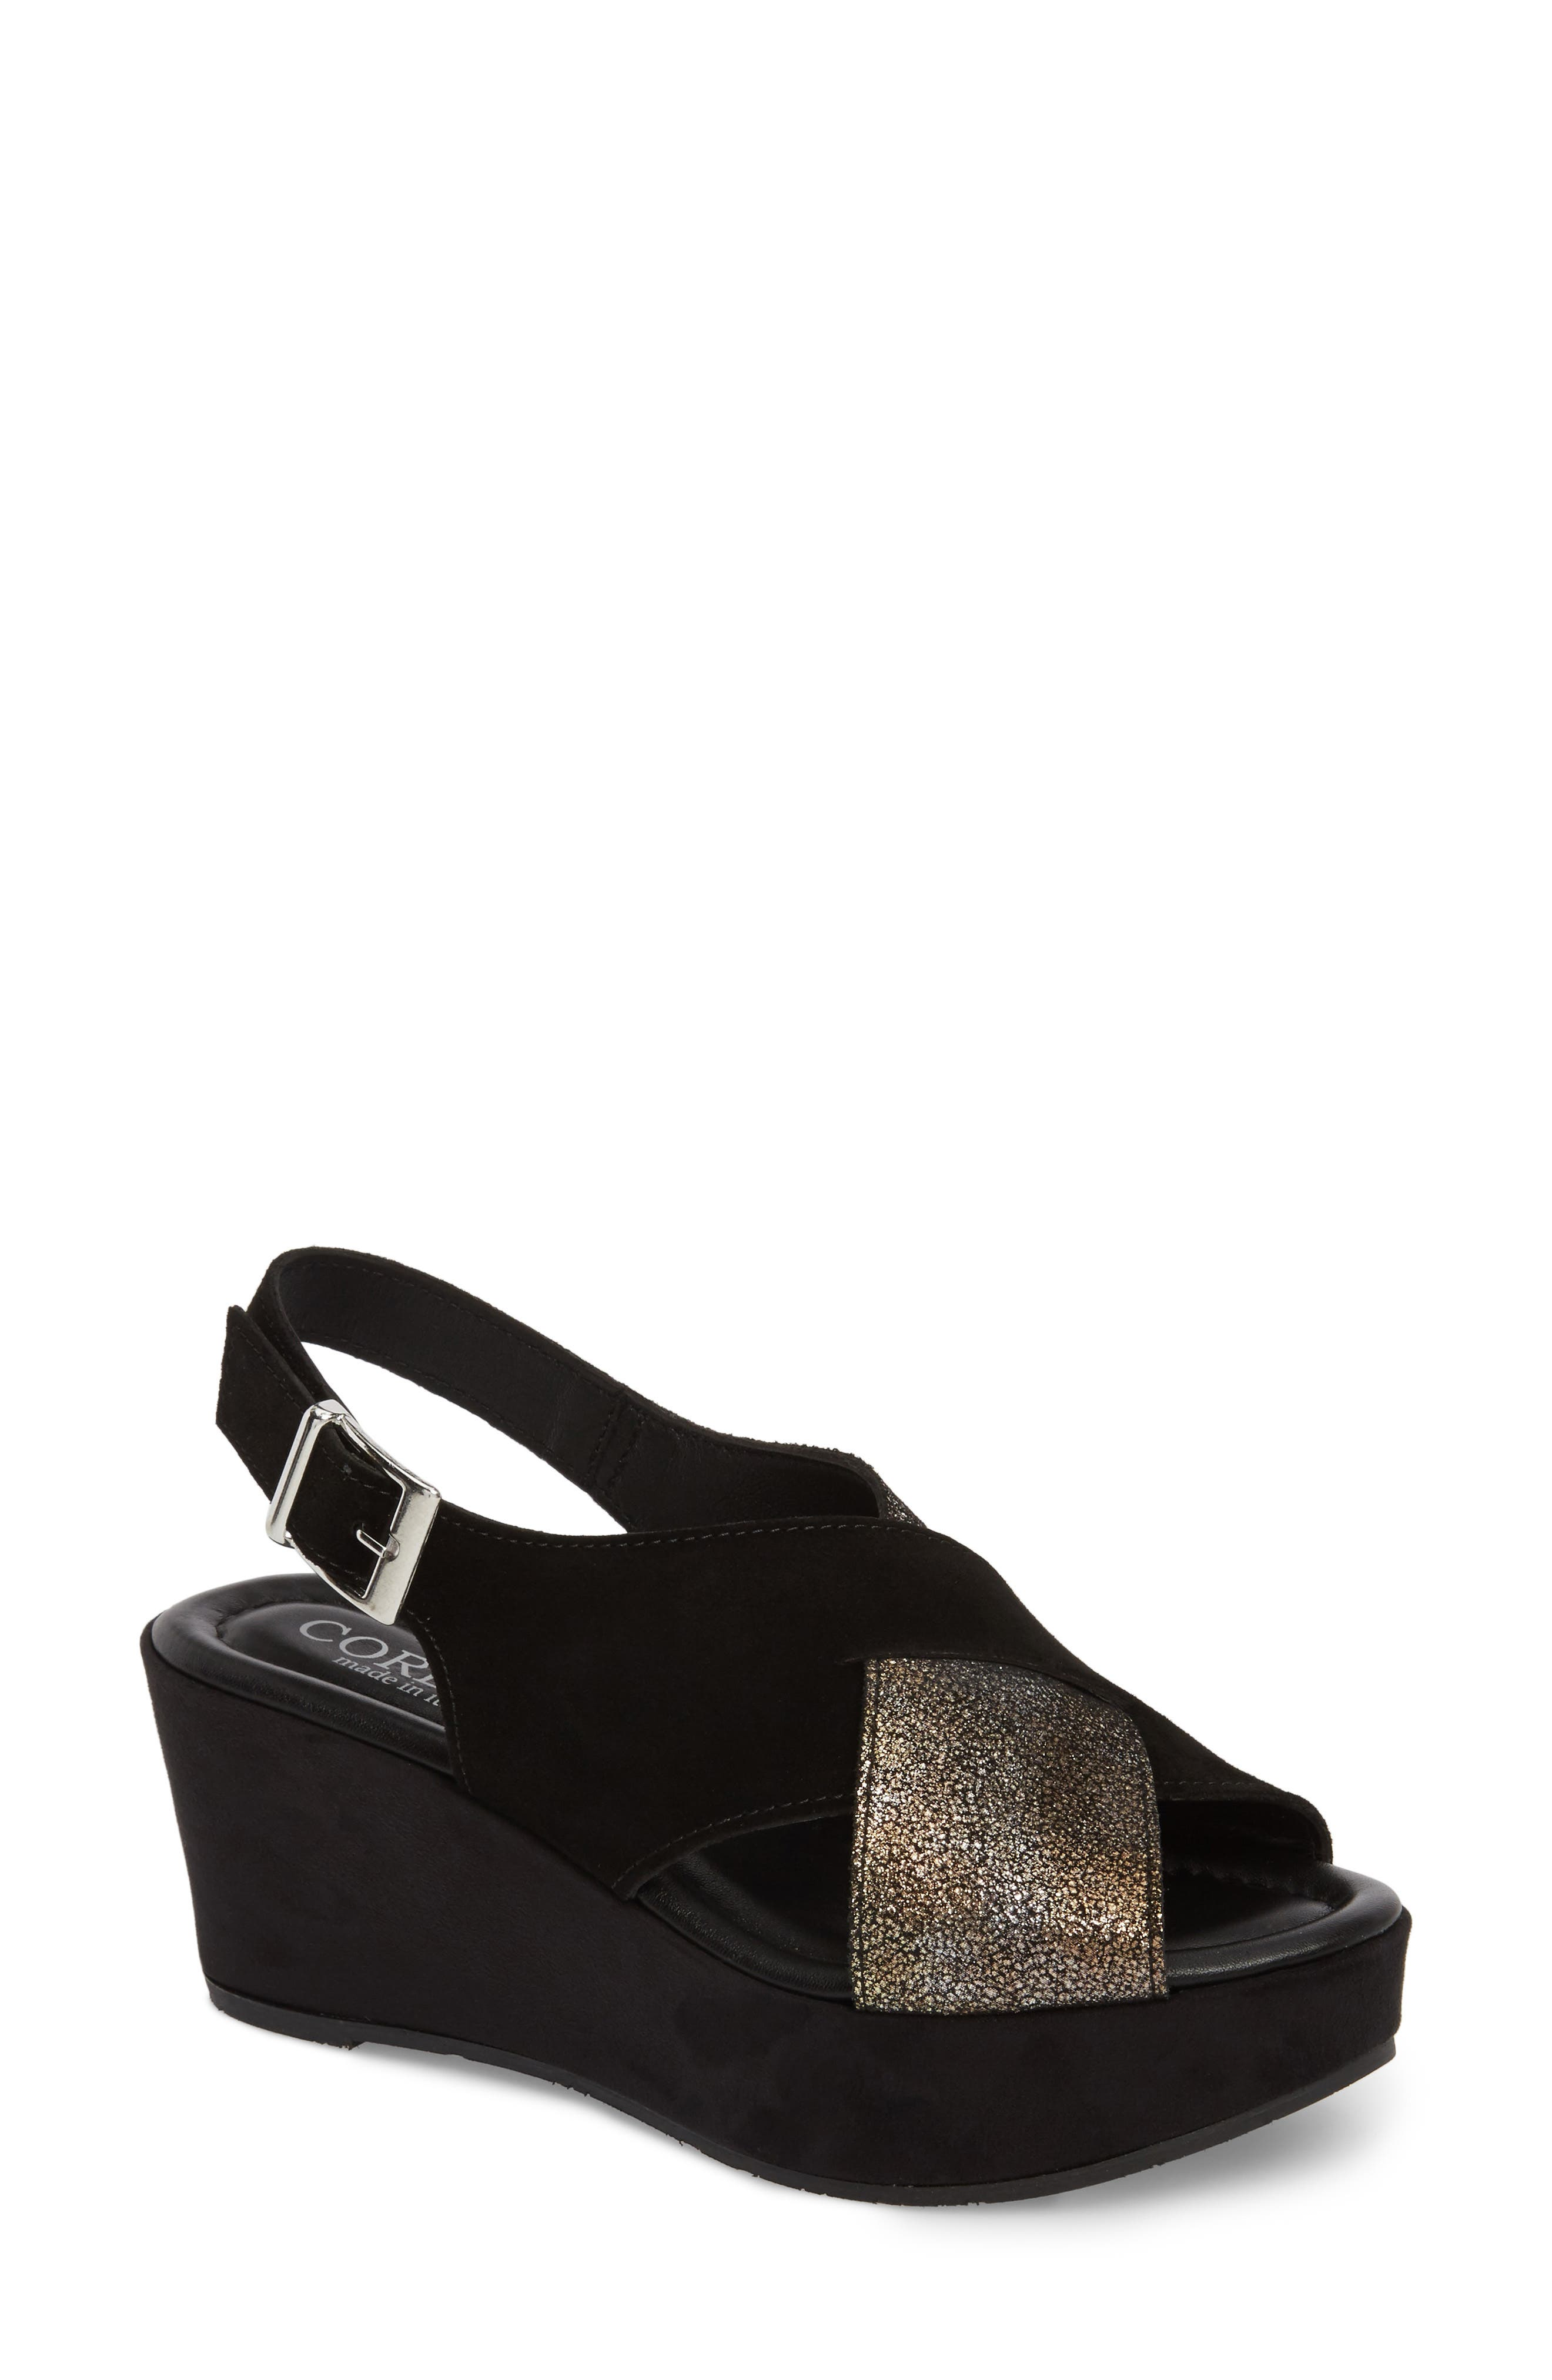 Cleary Wedge Sandal,                             Main thumbnail 1, color,                             BLACK/ PEWTER SUEDE